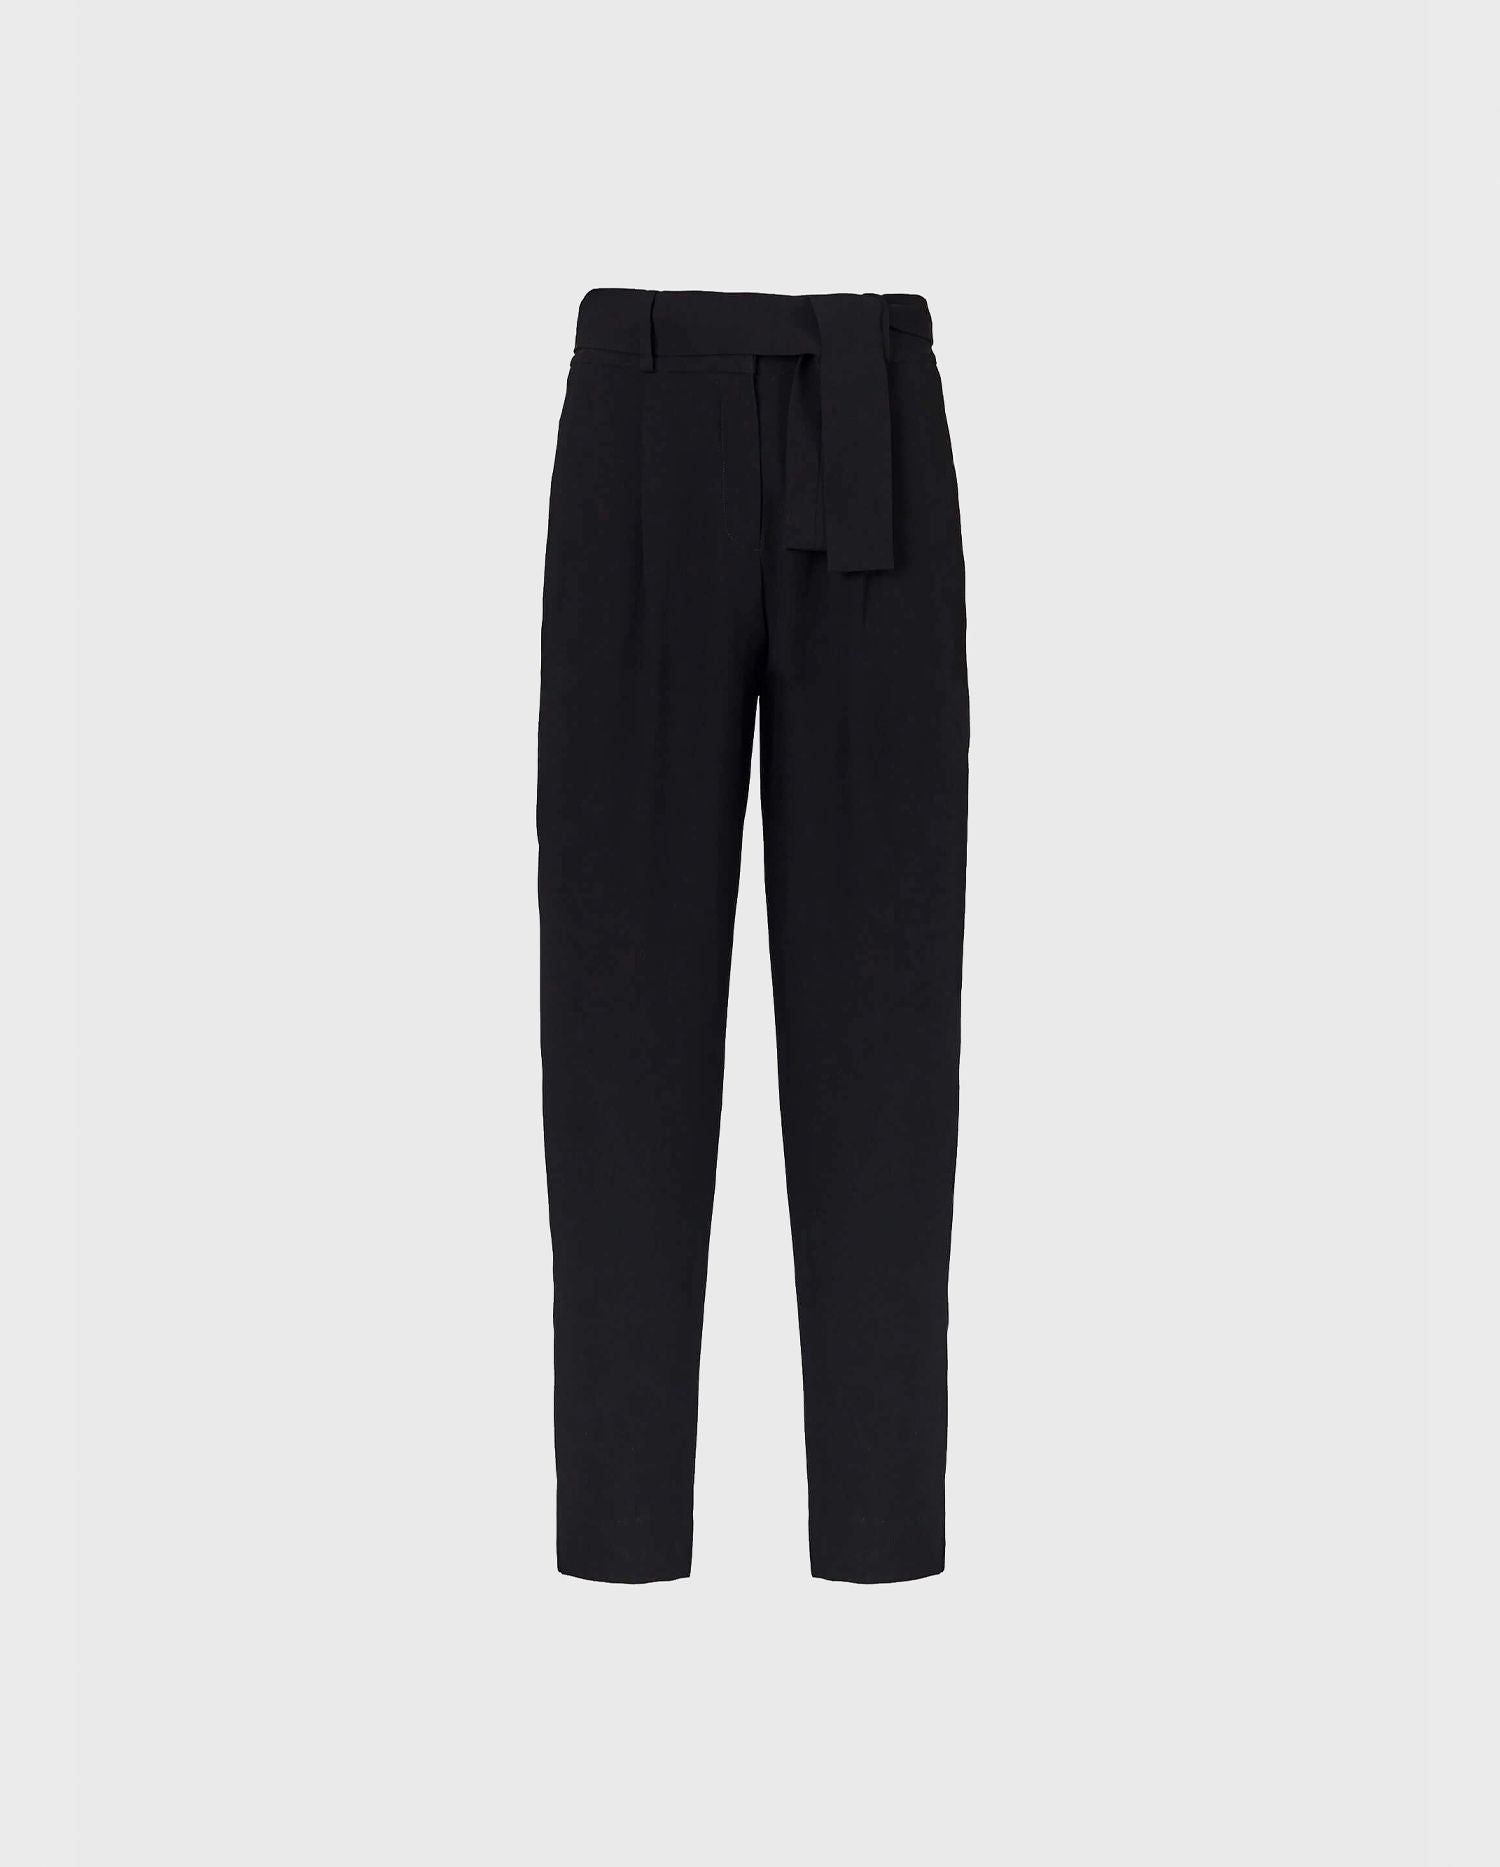 The black pleated ankle LESTER pants will become a staple to your modern wardrobe